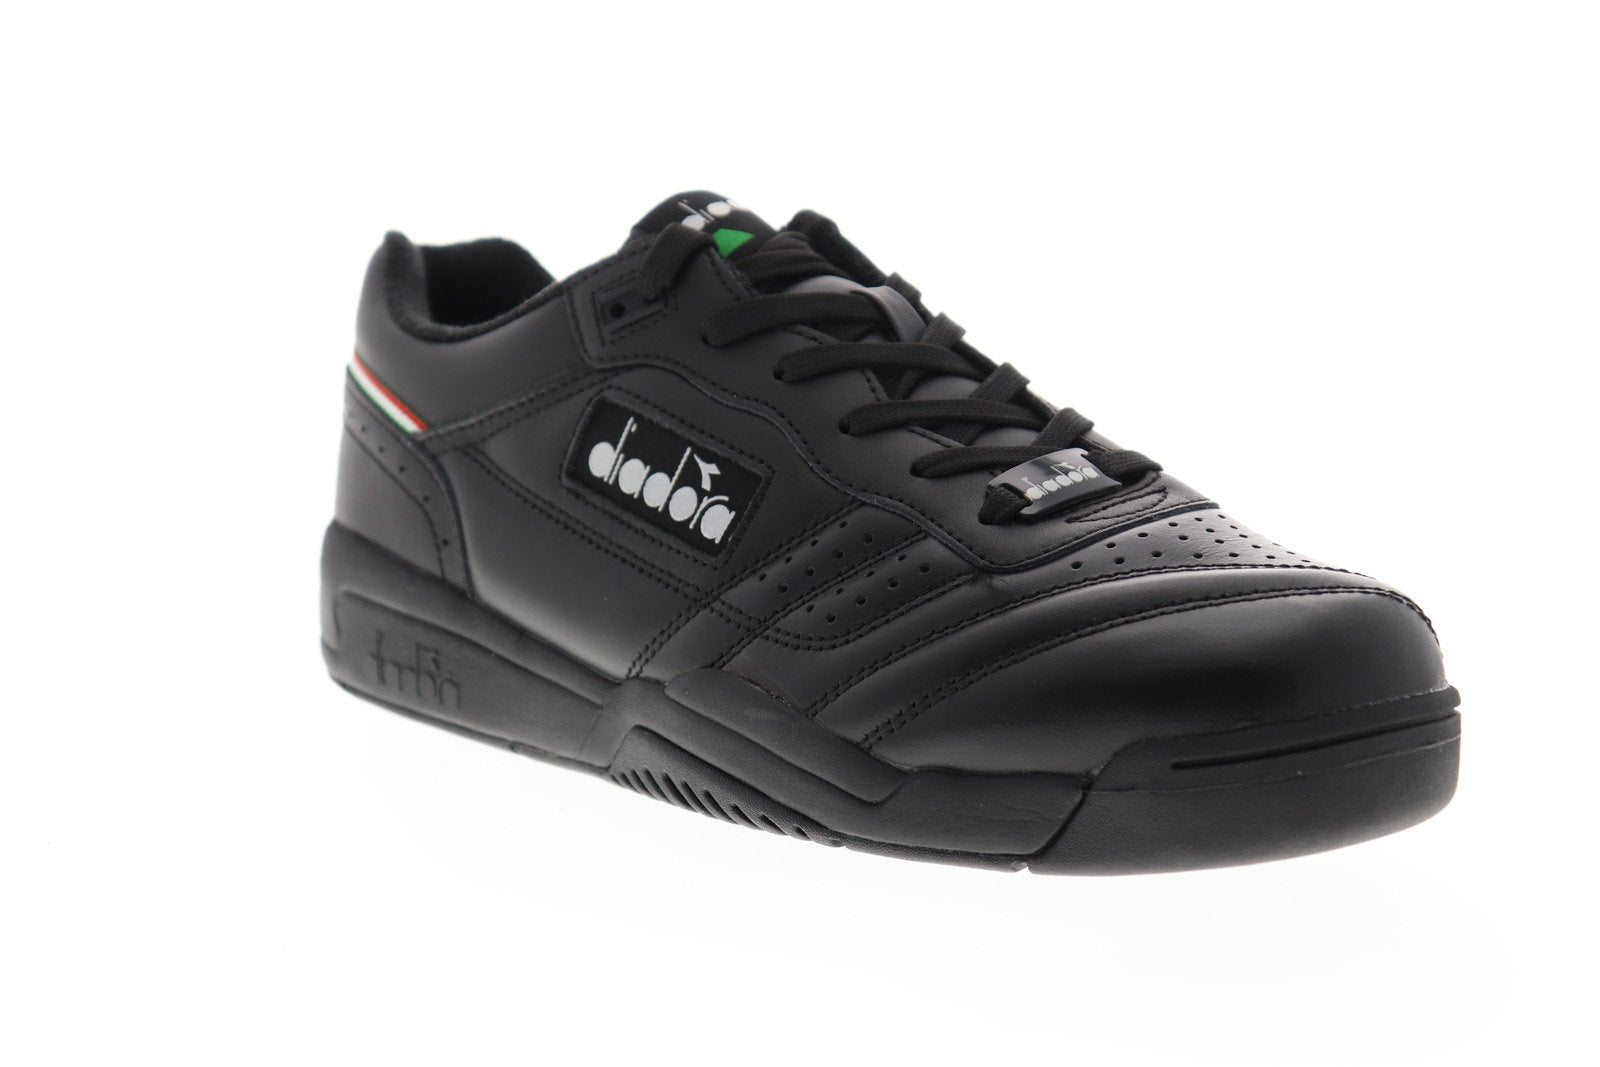 Diadora Action Mens Black Leather Low Top Lace Up Sneakers Shoes